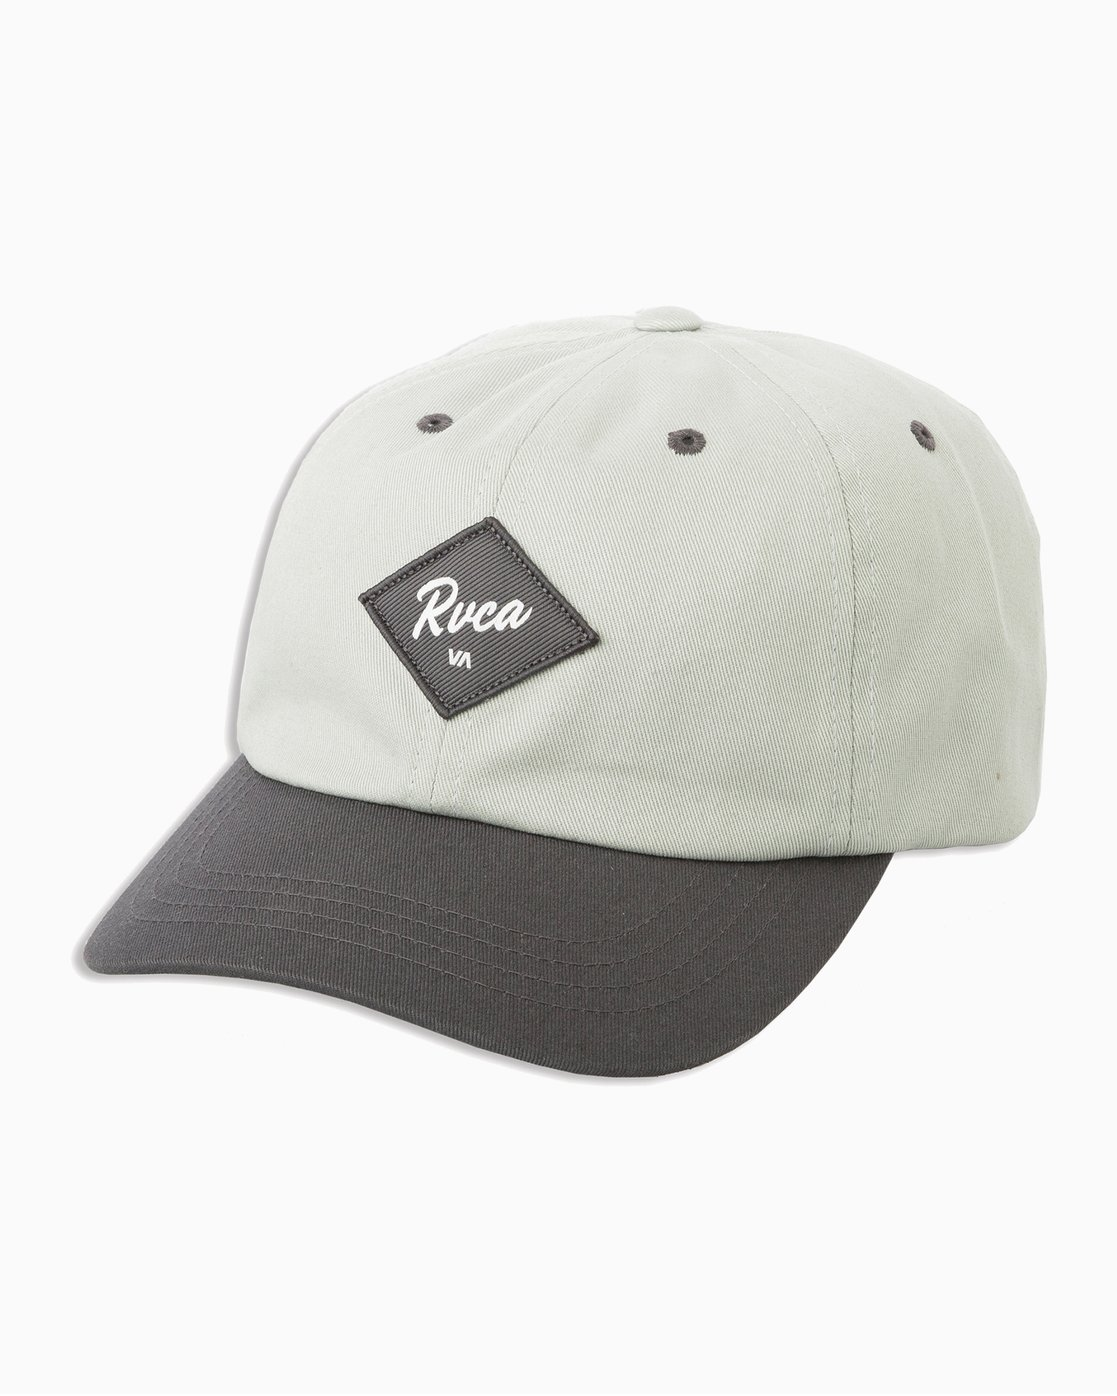 0 Tom Gerrard Holla Dad Hat Grey WAHWTRHO RVCA e5e6b4c936a